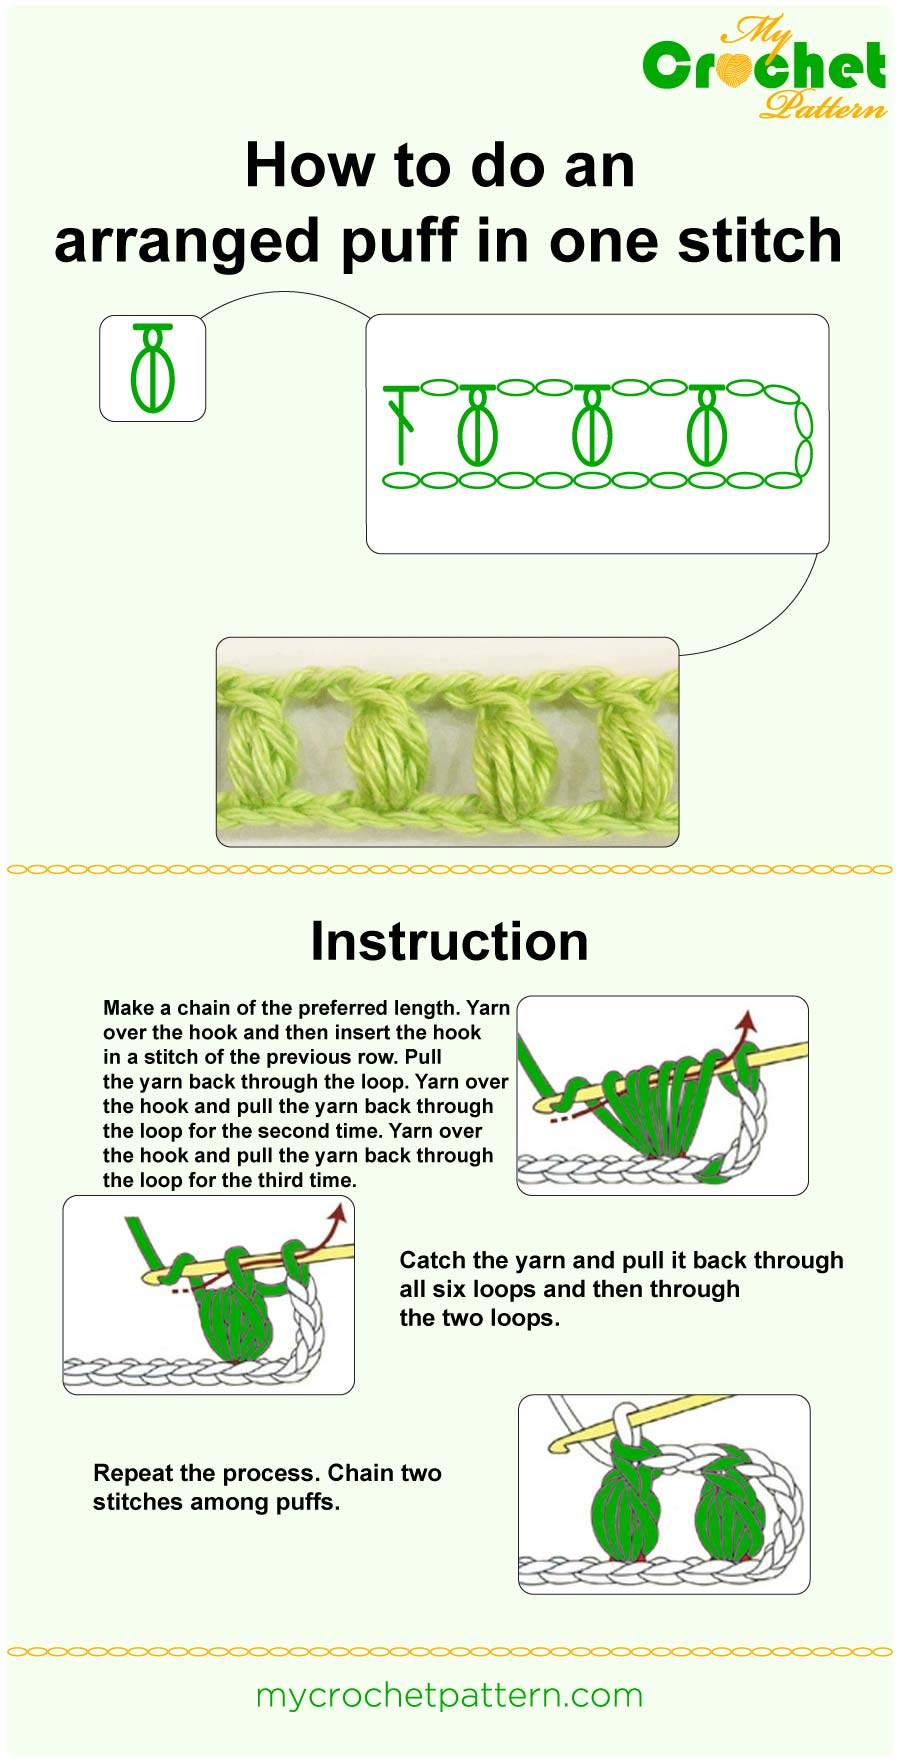 how to do an arranged puff in one stitch - infographic